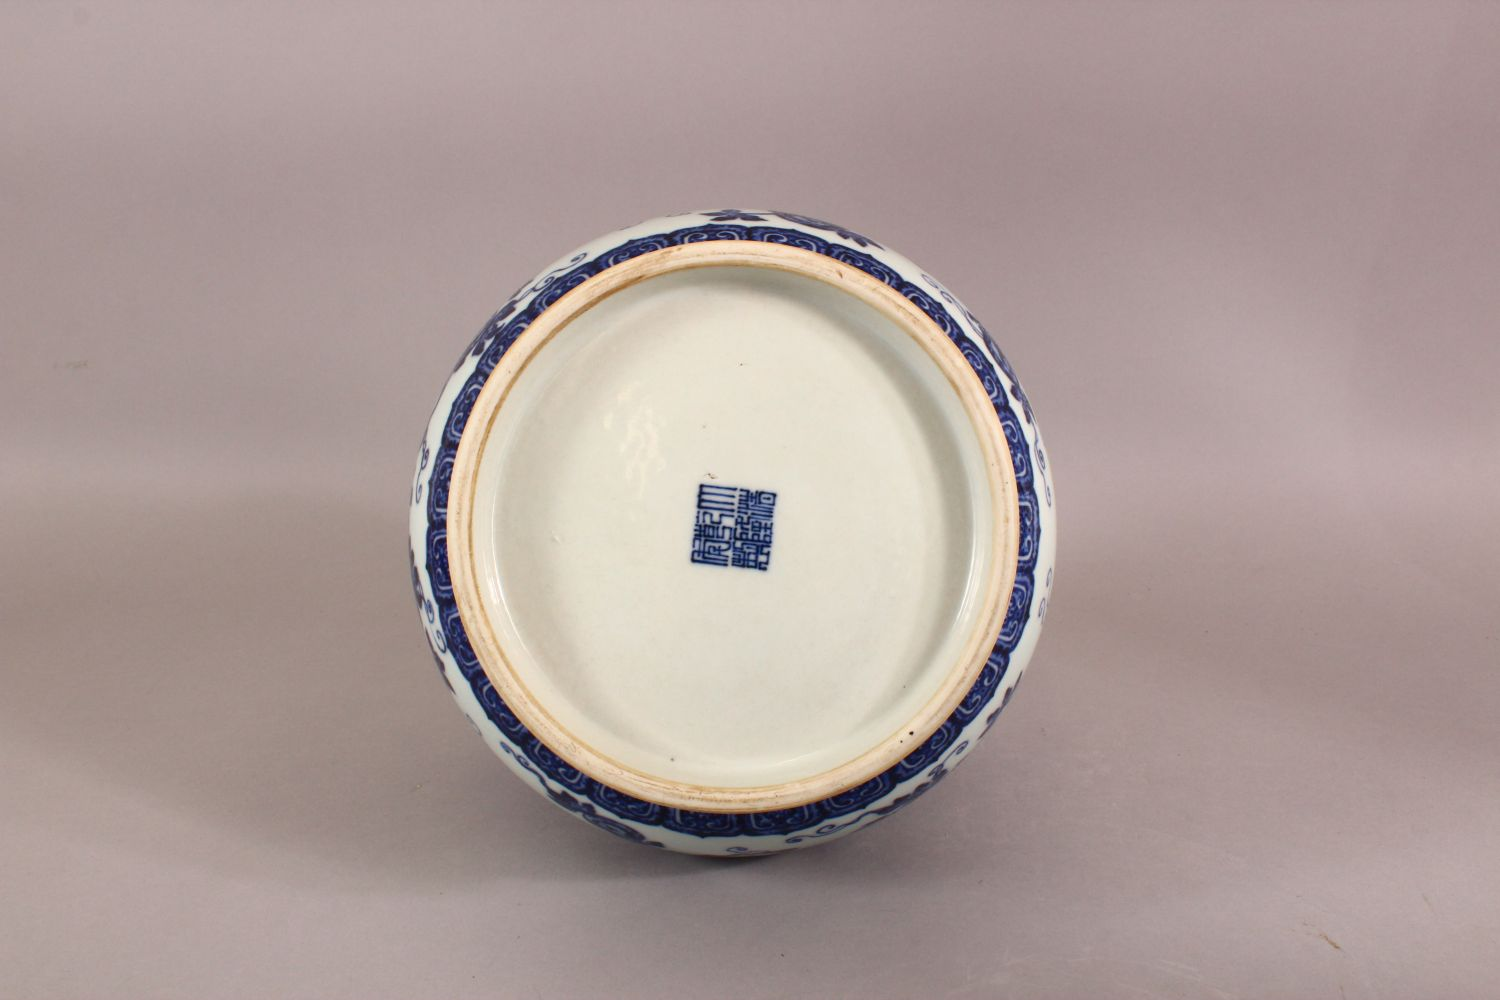 A CHINESE BLUE AND WHITE PORCELAIN PLANTER / VASE, 19cm high, approx 24cm wide. - Image 5 of 6